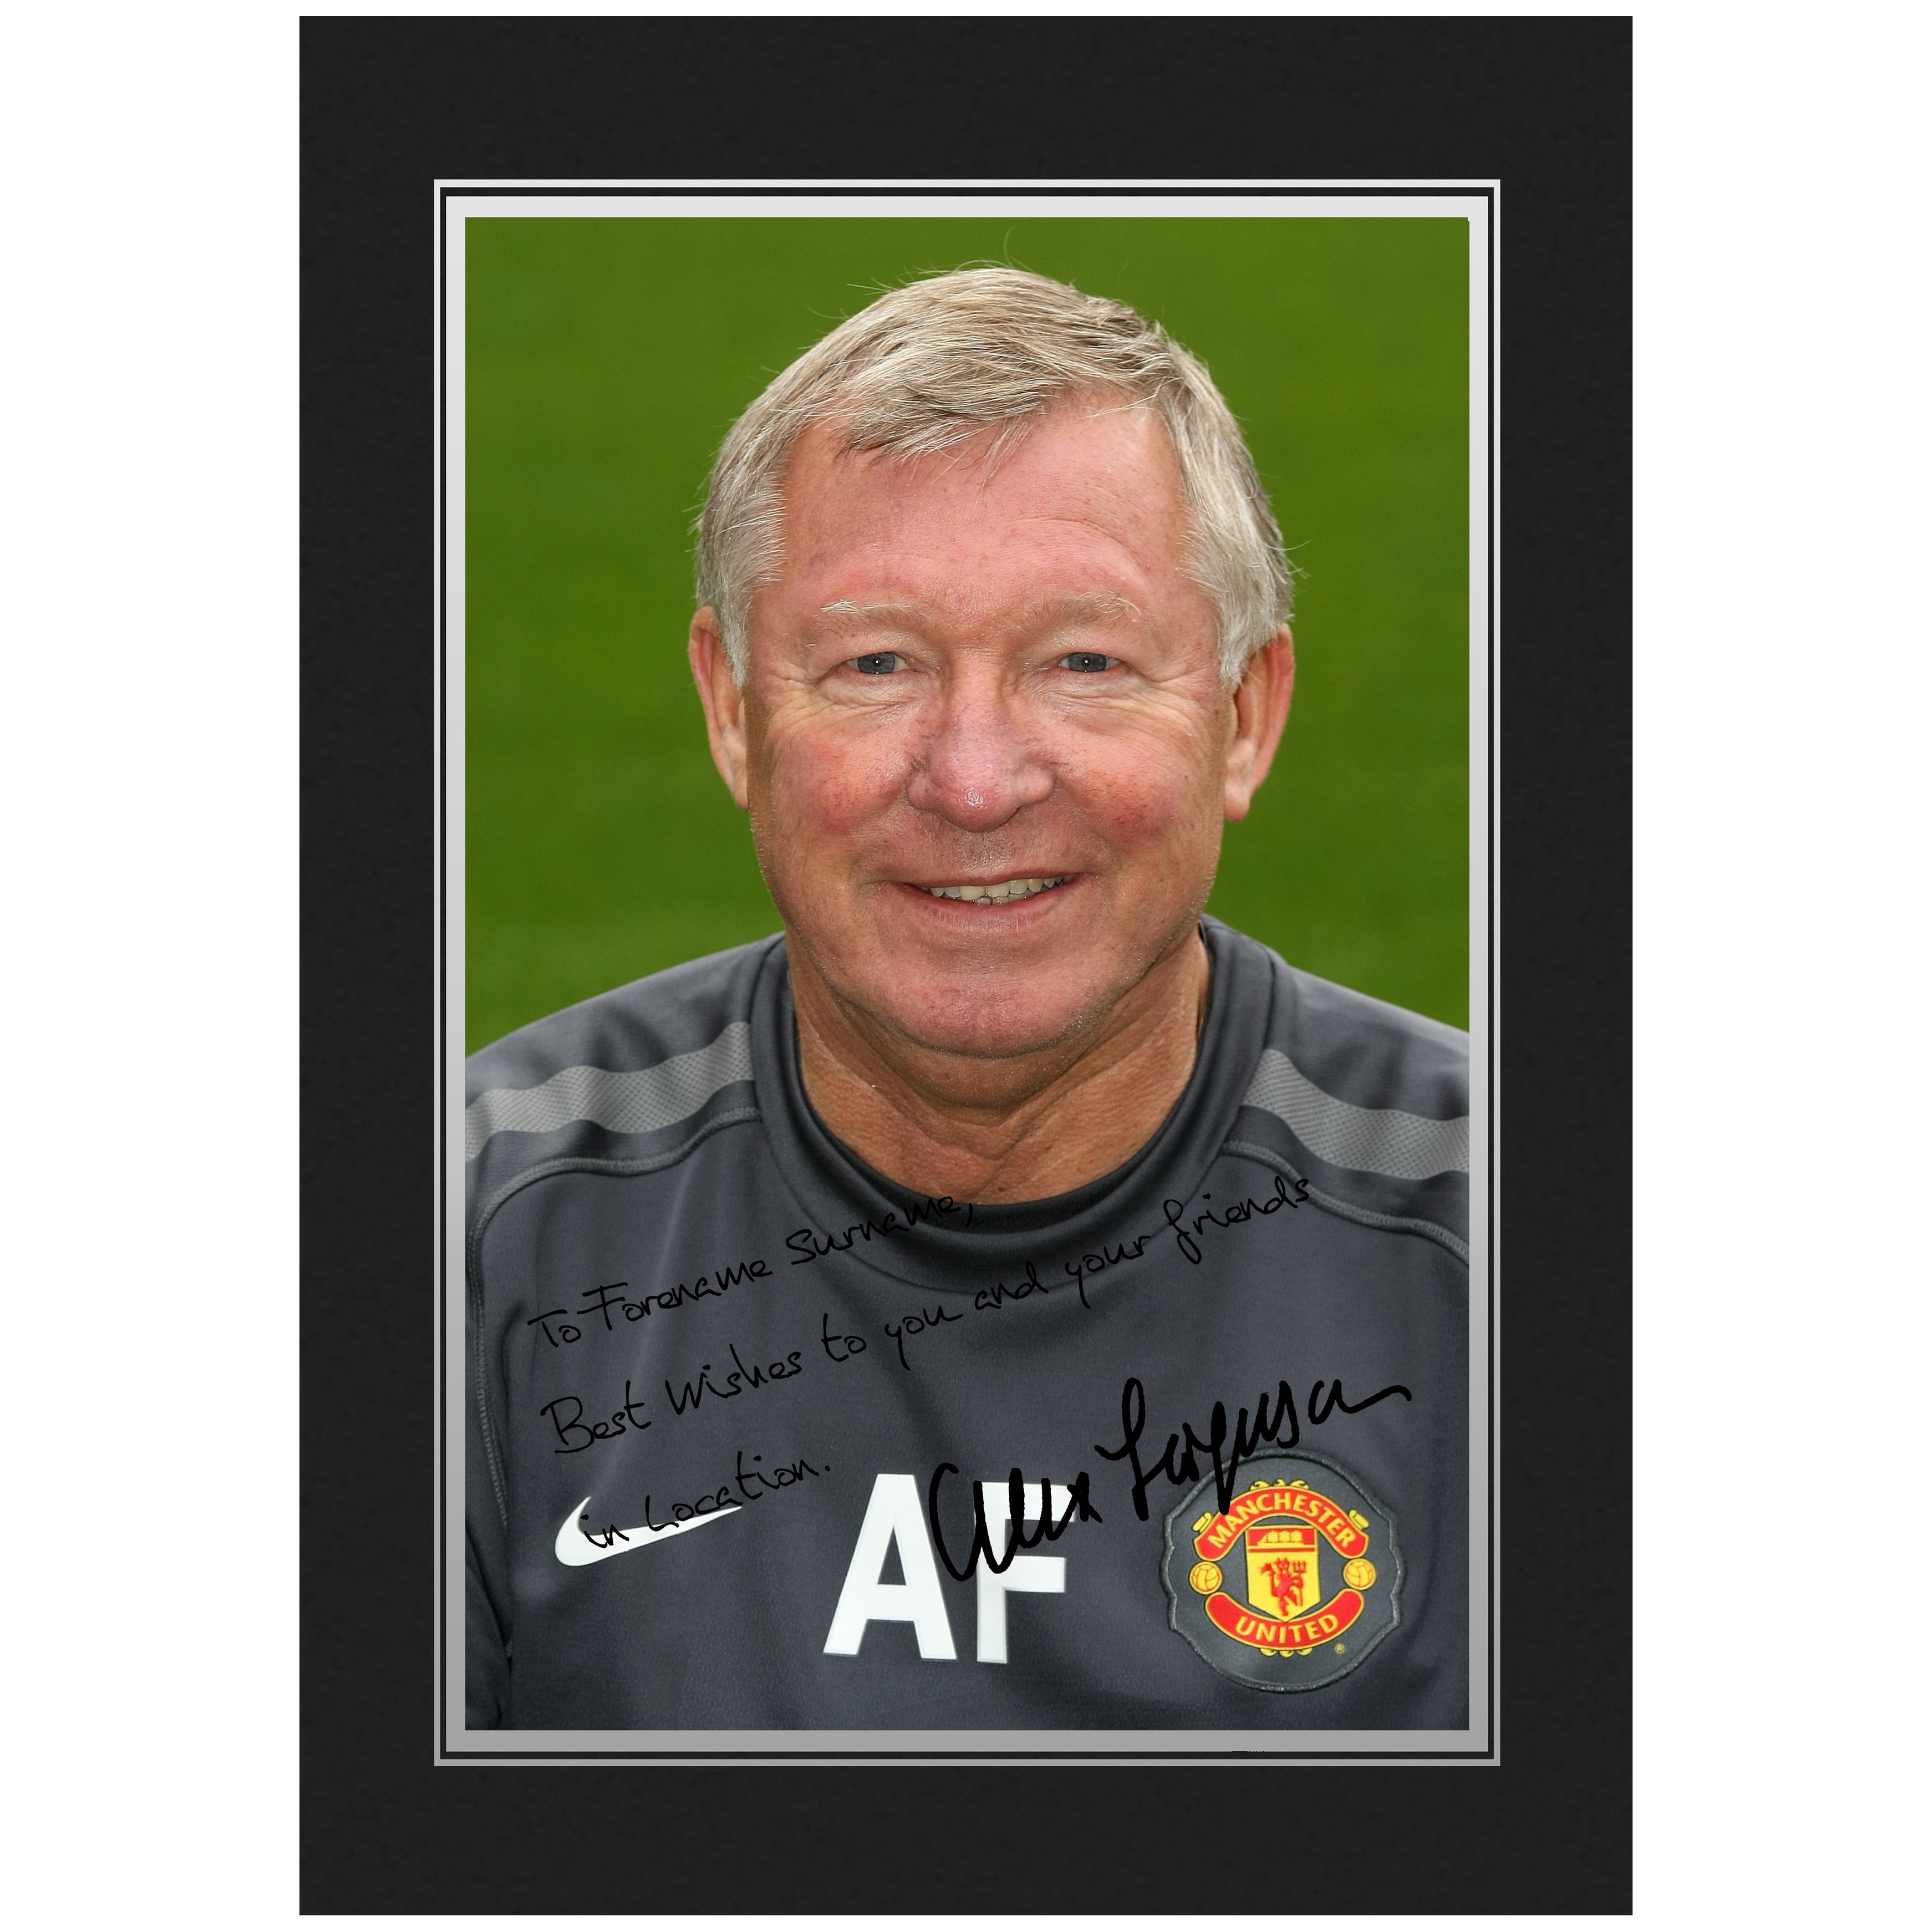 Manchester United Personalised Signature Photo In Presentation Folder - Alex Ferguson